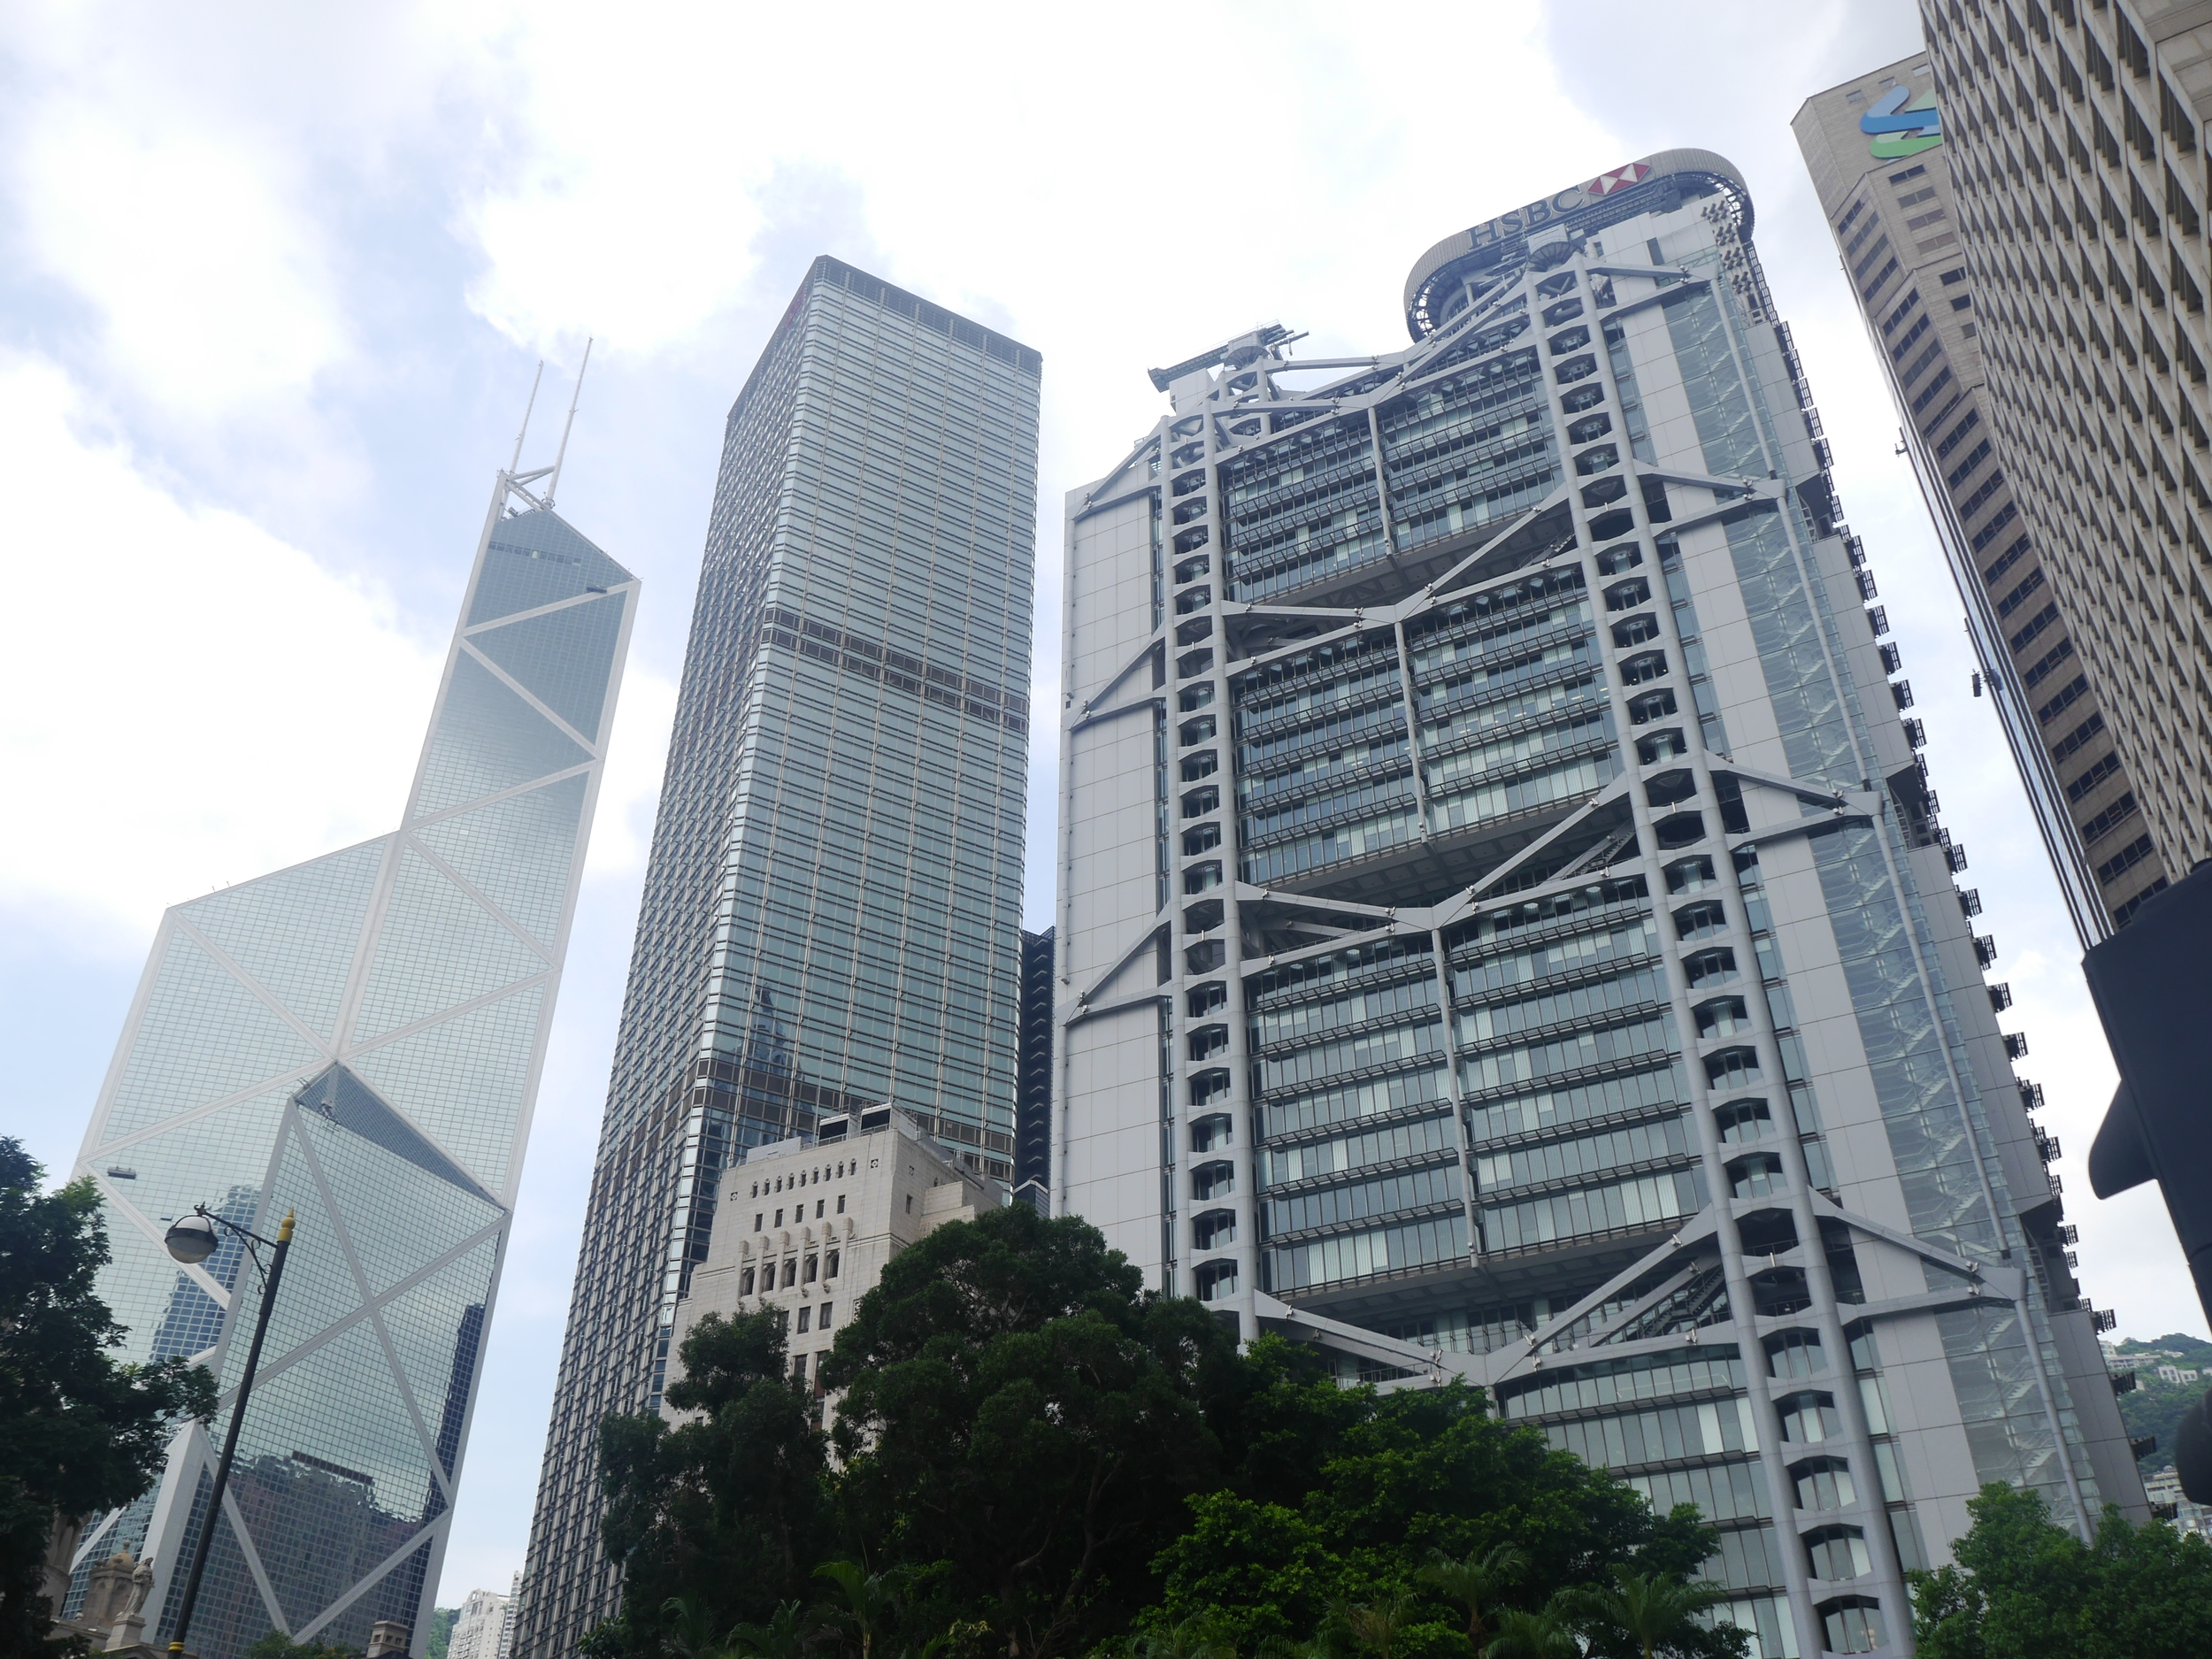 Two of the more famous buildings in Hong Kong. The  Bank of China Tower  on the left and the  HSBC Building  on the right.